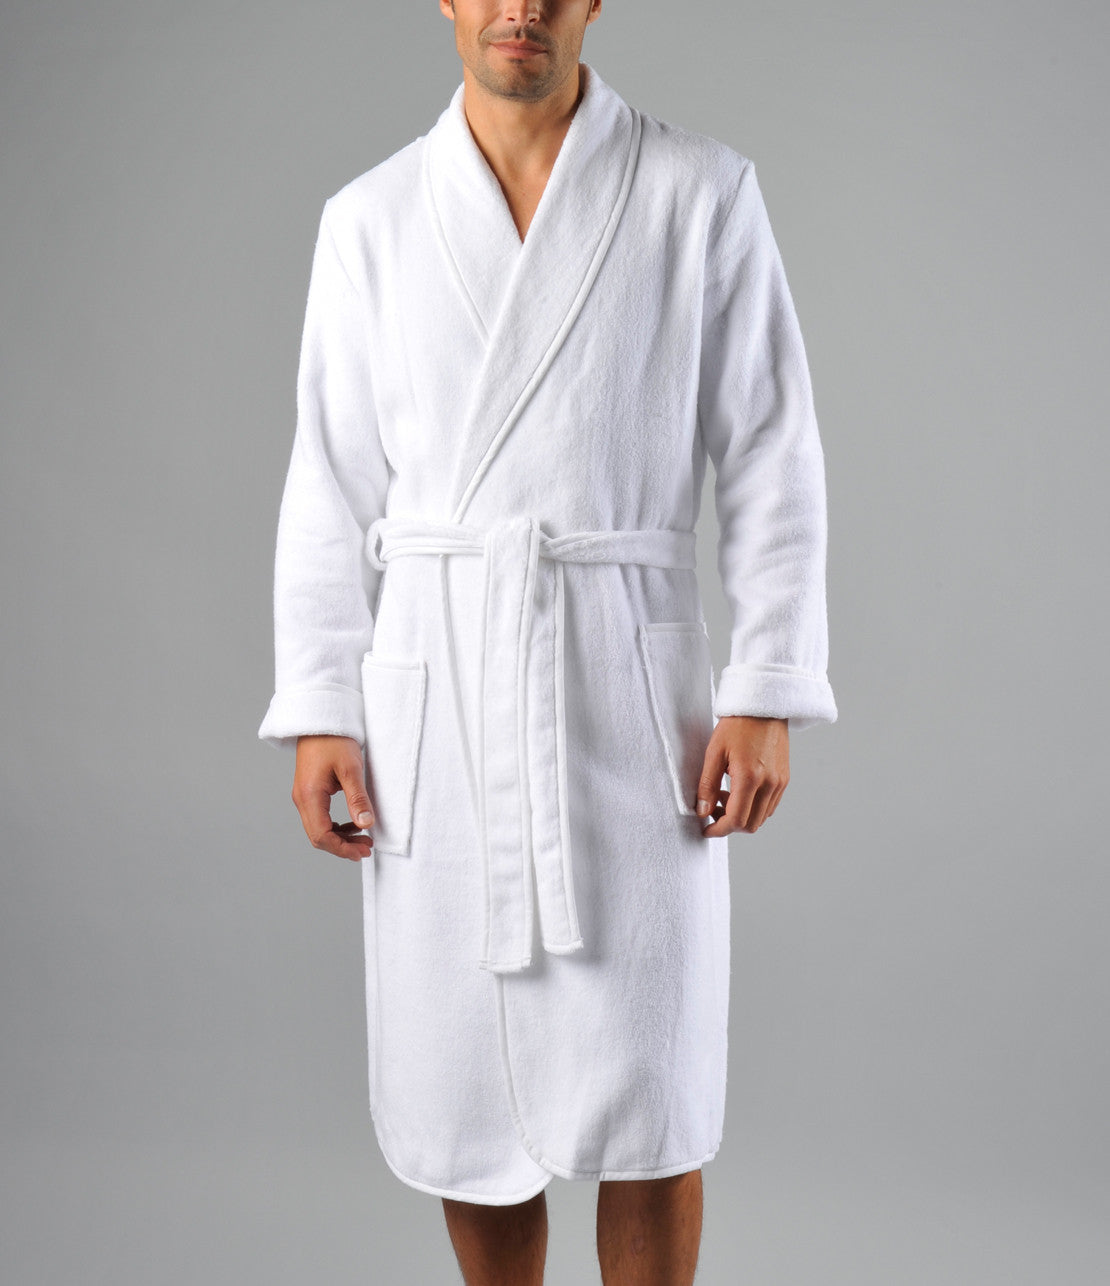 3e673beb28 Men s Spa Robe – Wear Naked